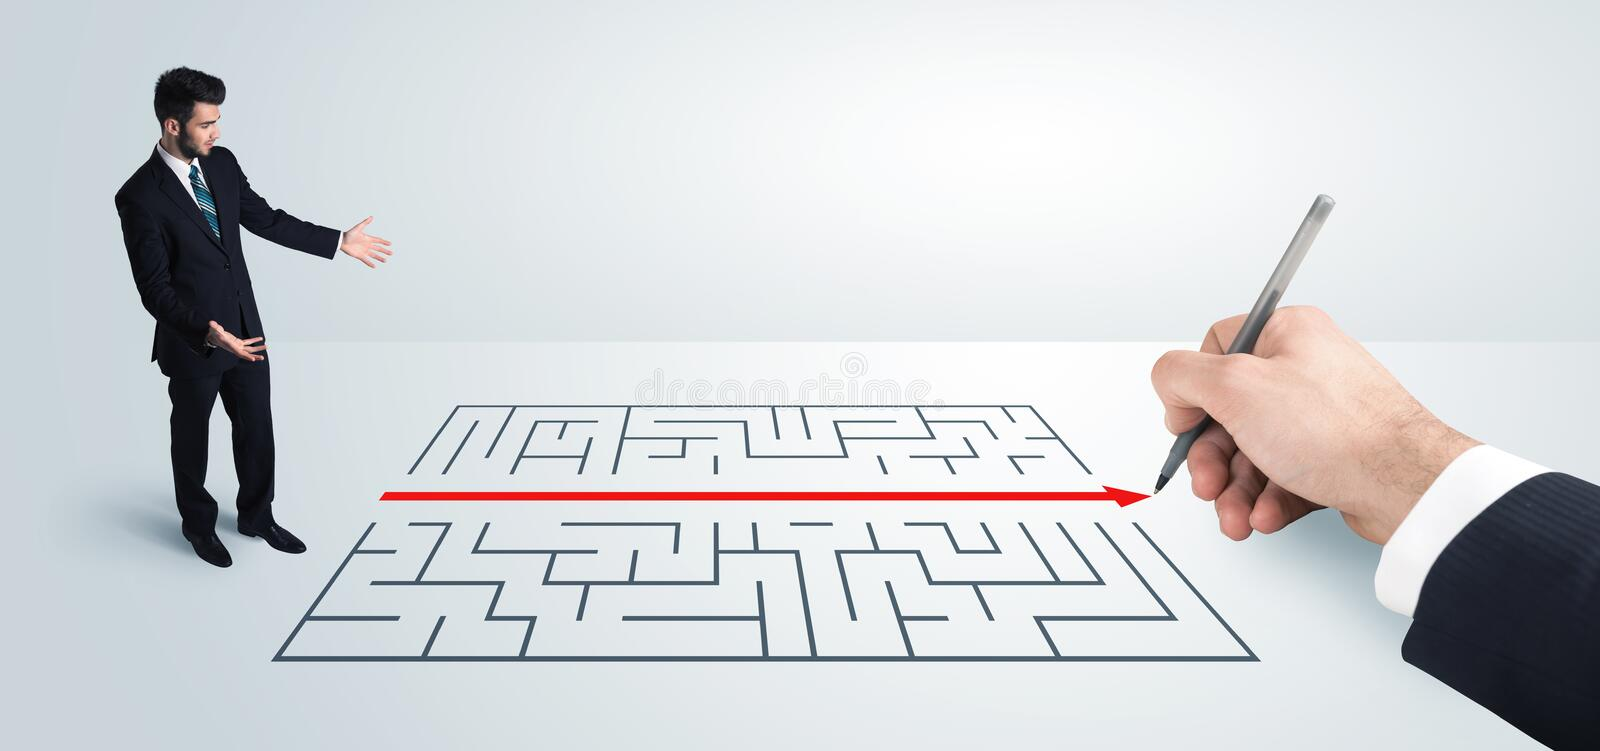 Business man looking at hand drawing solution for maze. Solution concept royalty free stock photos